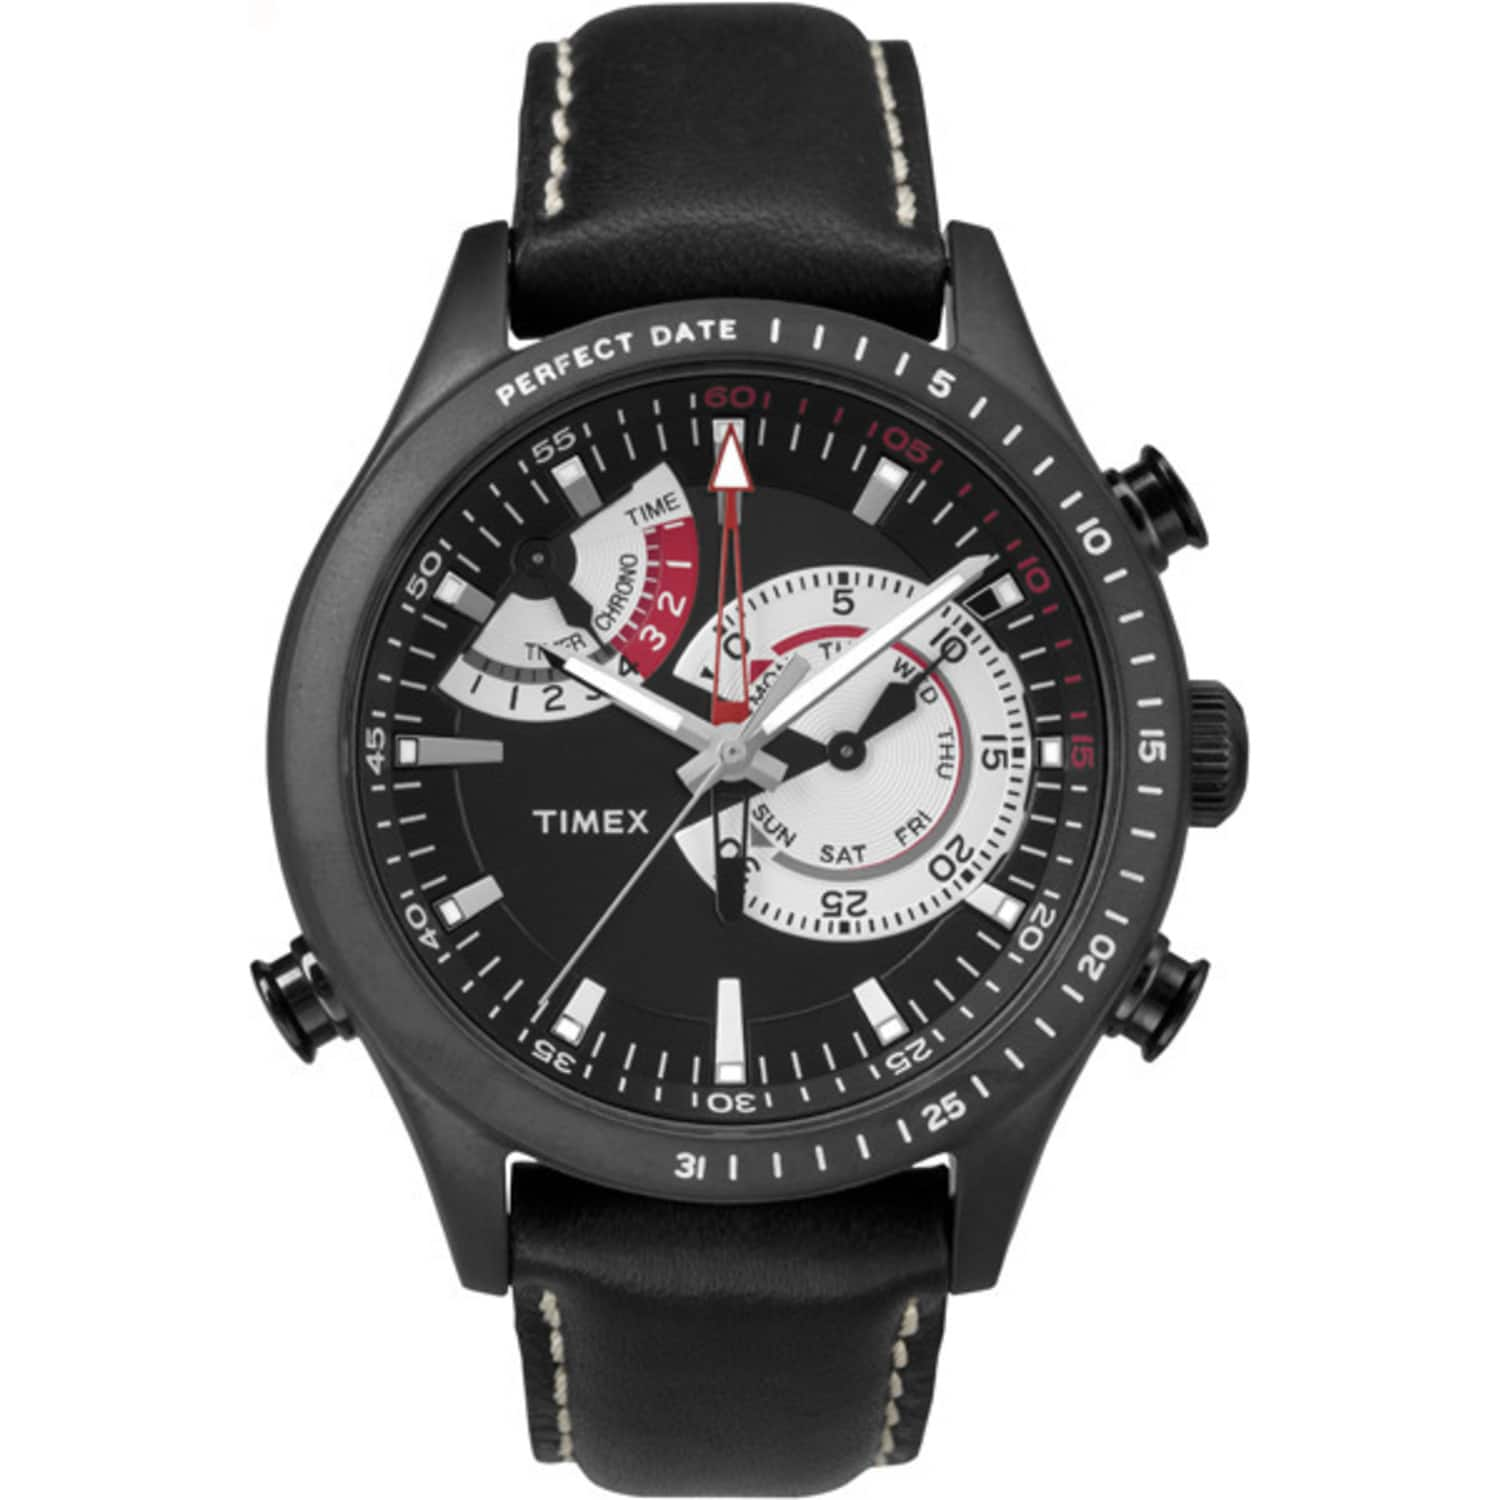 Timex Men Intelligent Quartz Chonograph Timer Perfect Date Black Watch TW2P72600:  $54.39 AC+ FS